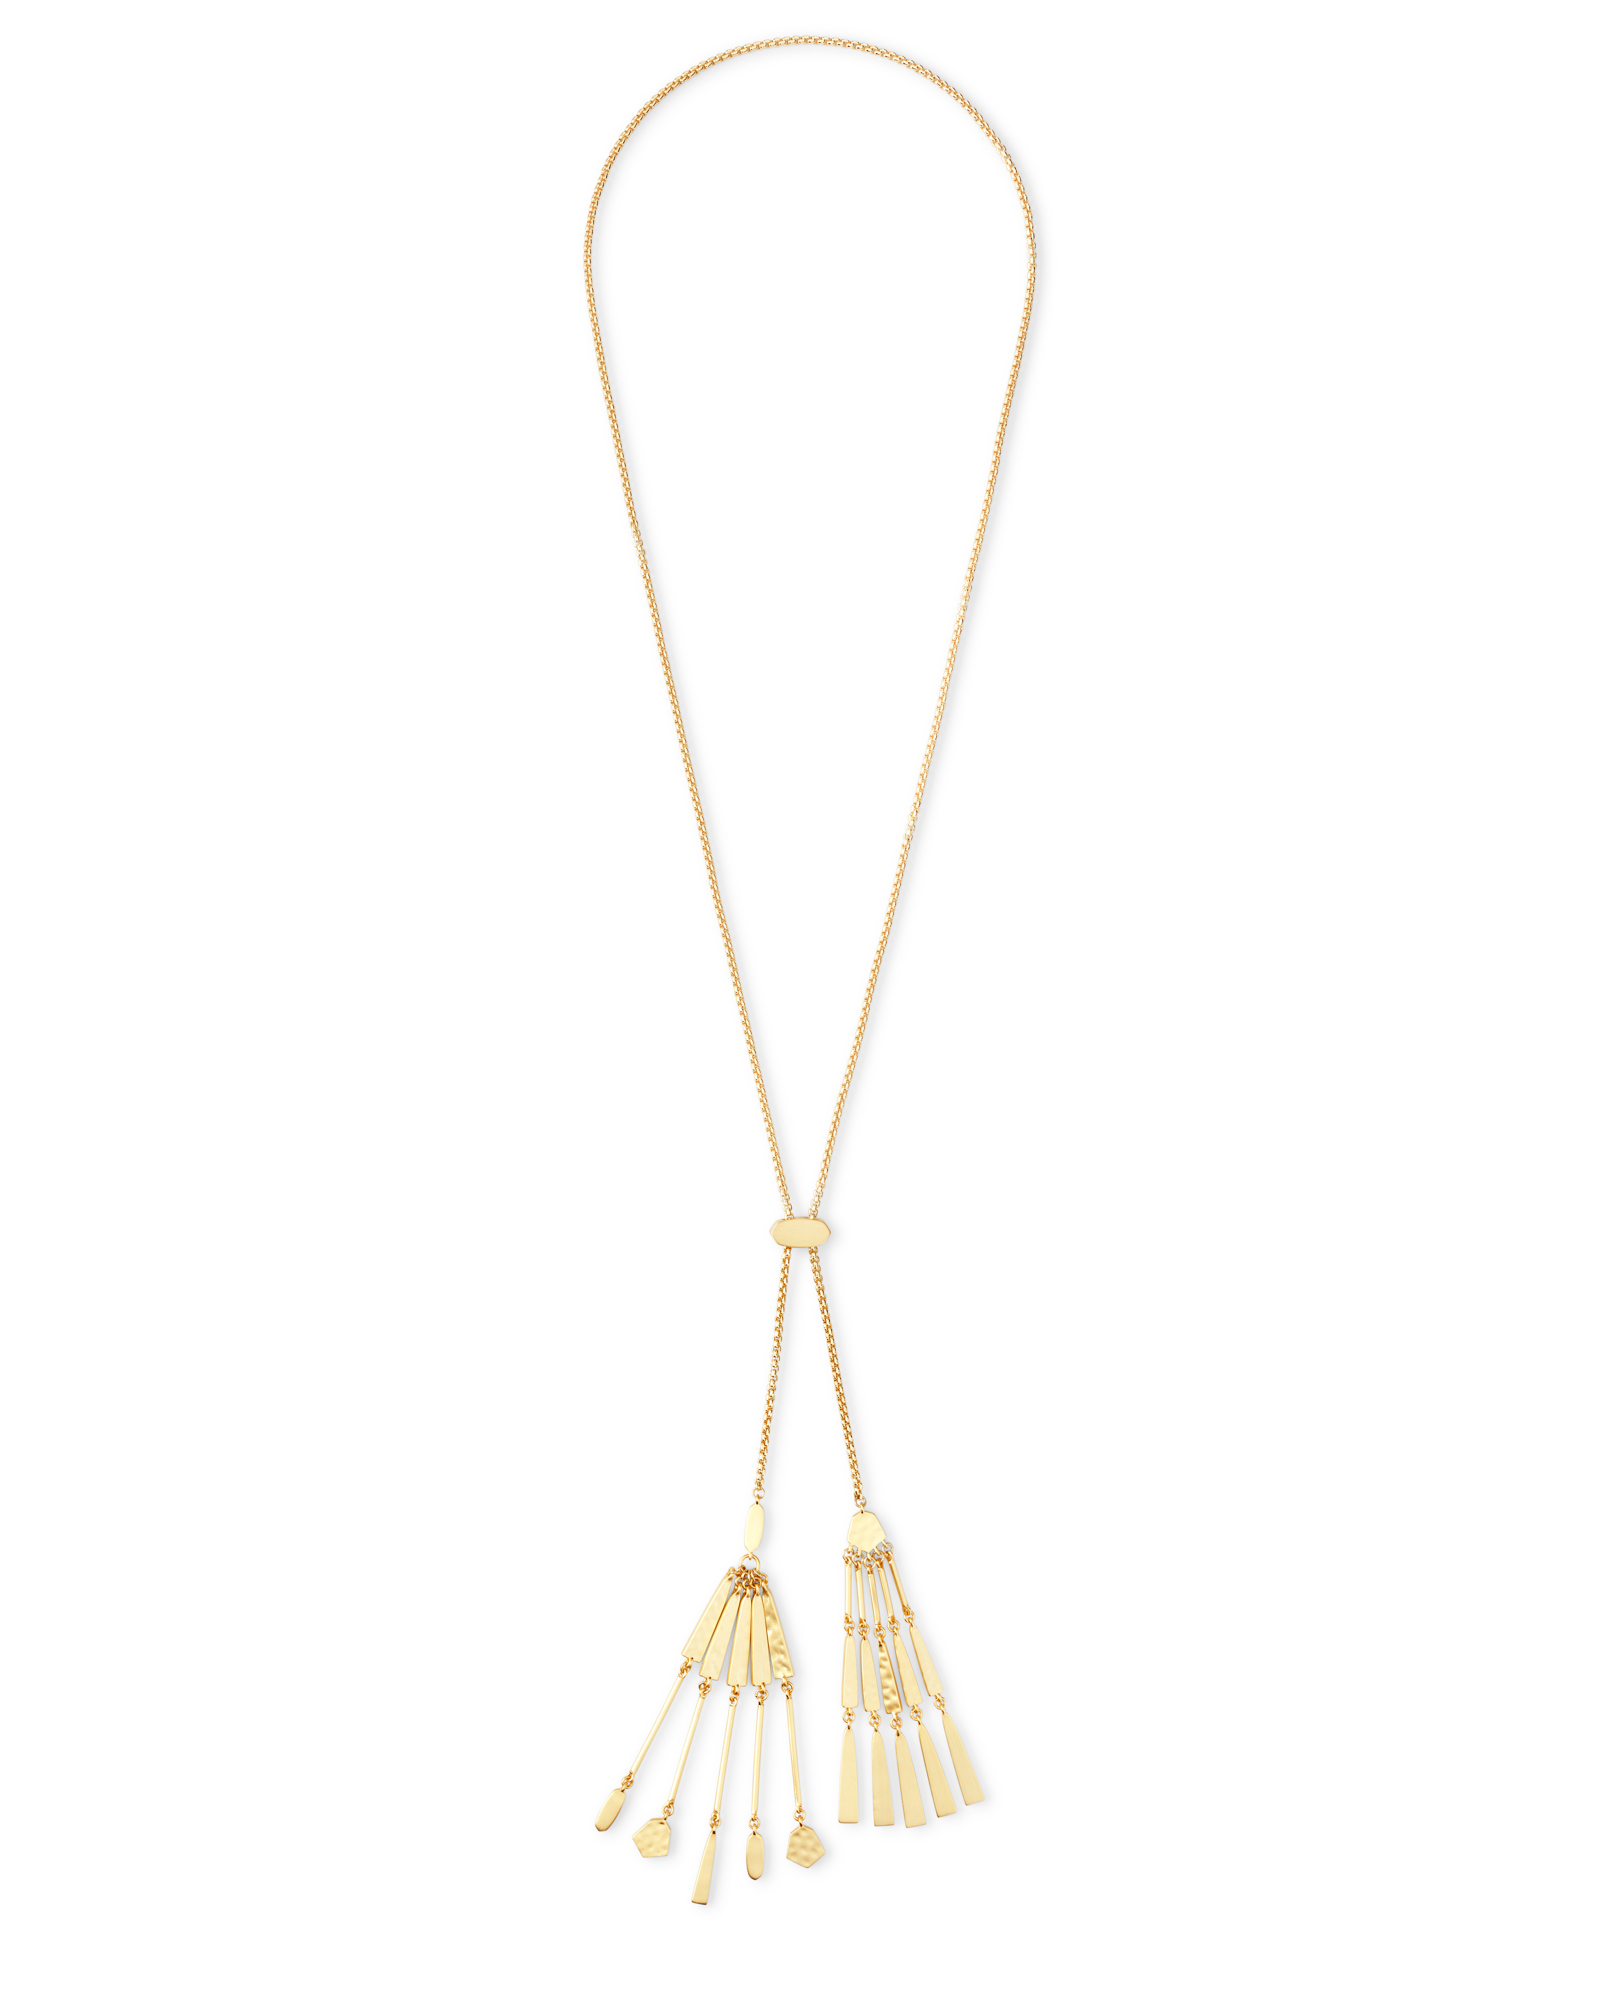 Lainey Y Necklace in Gold